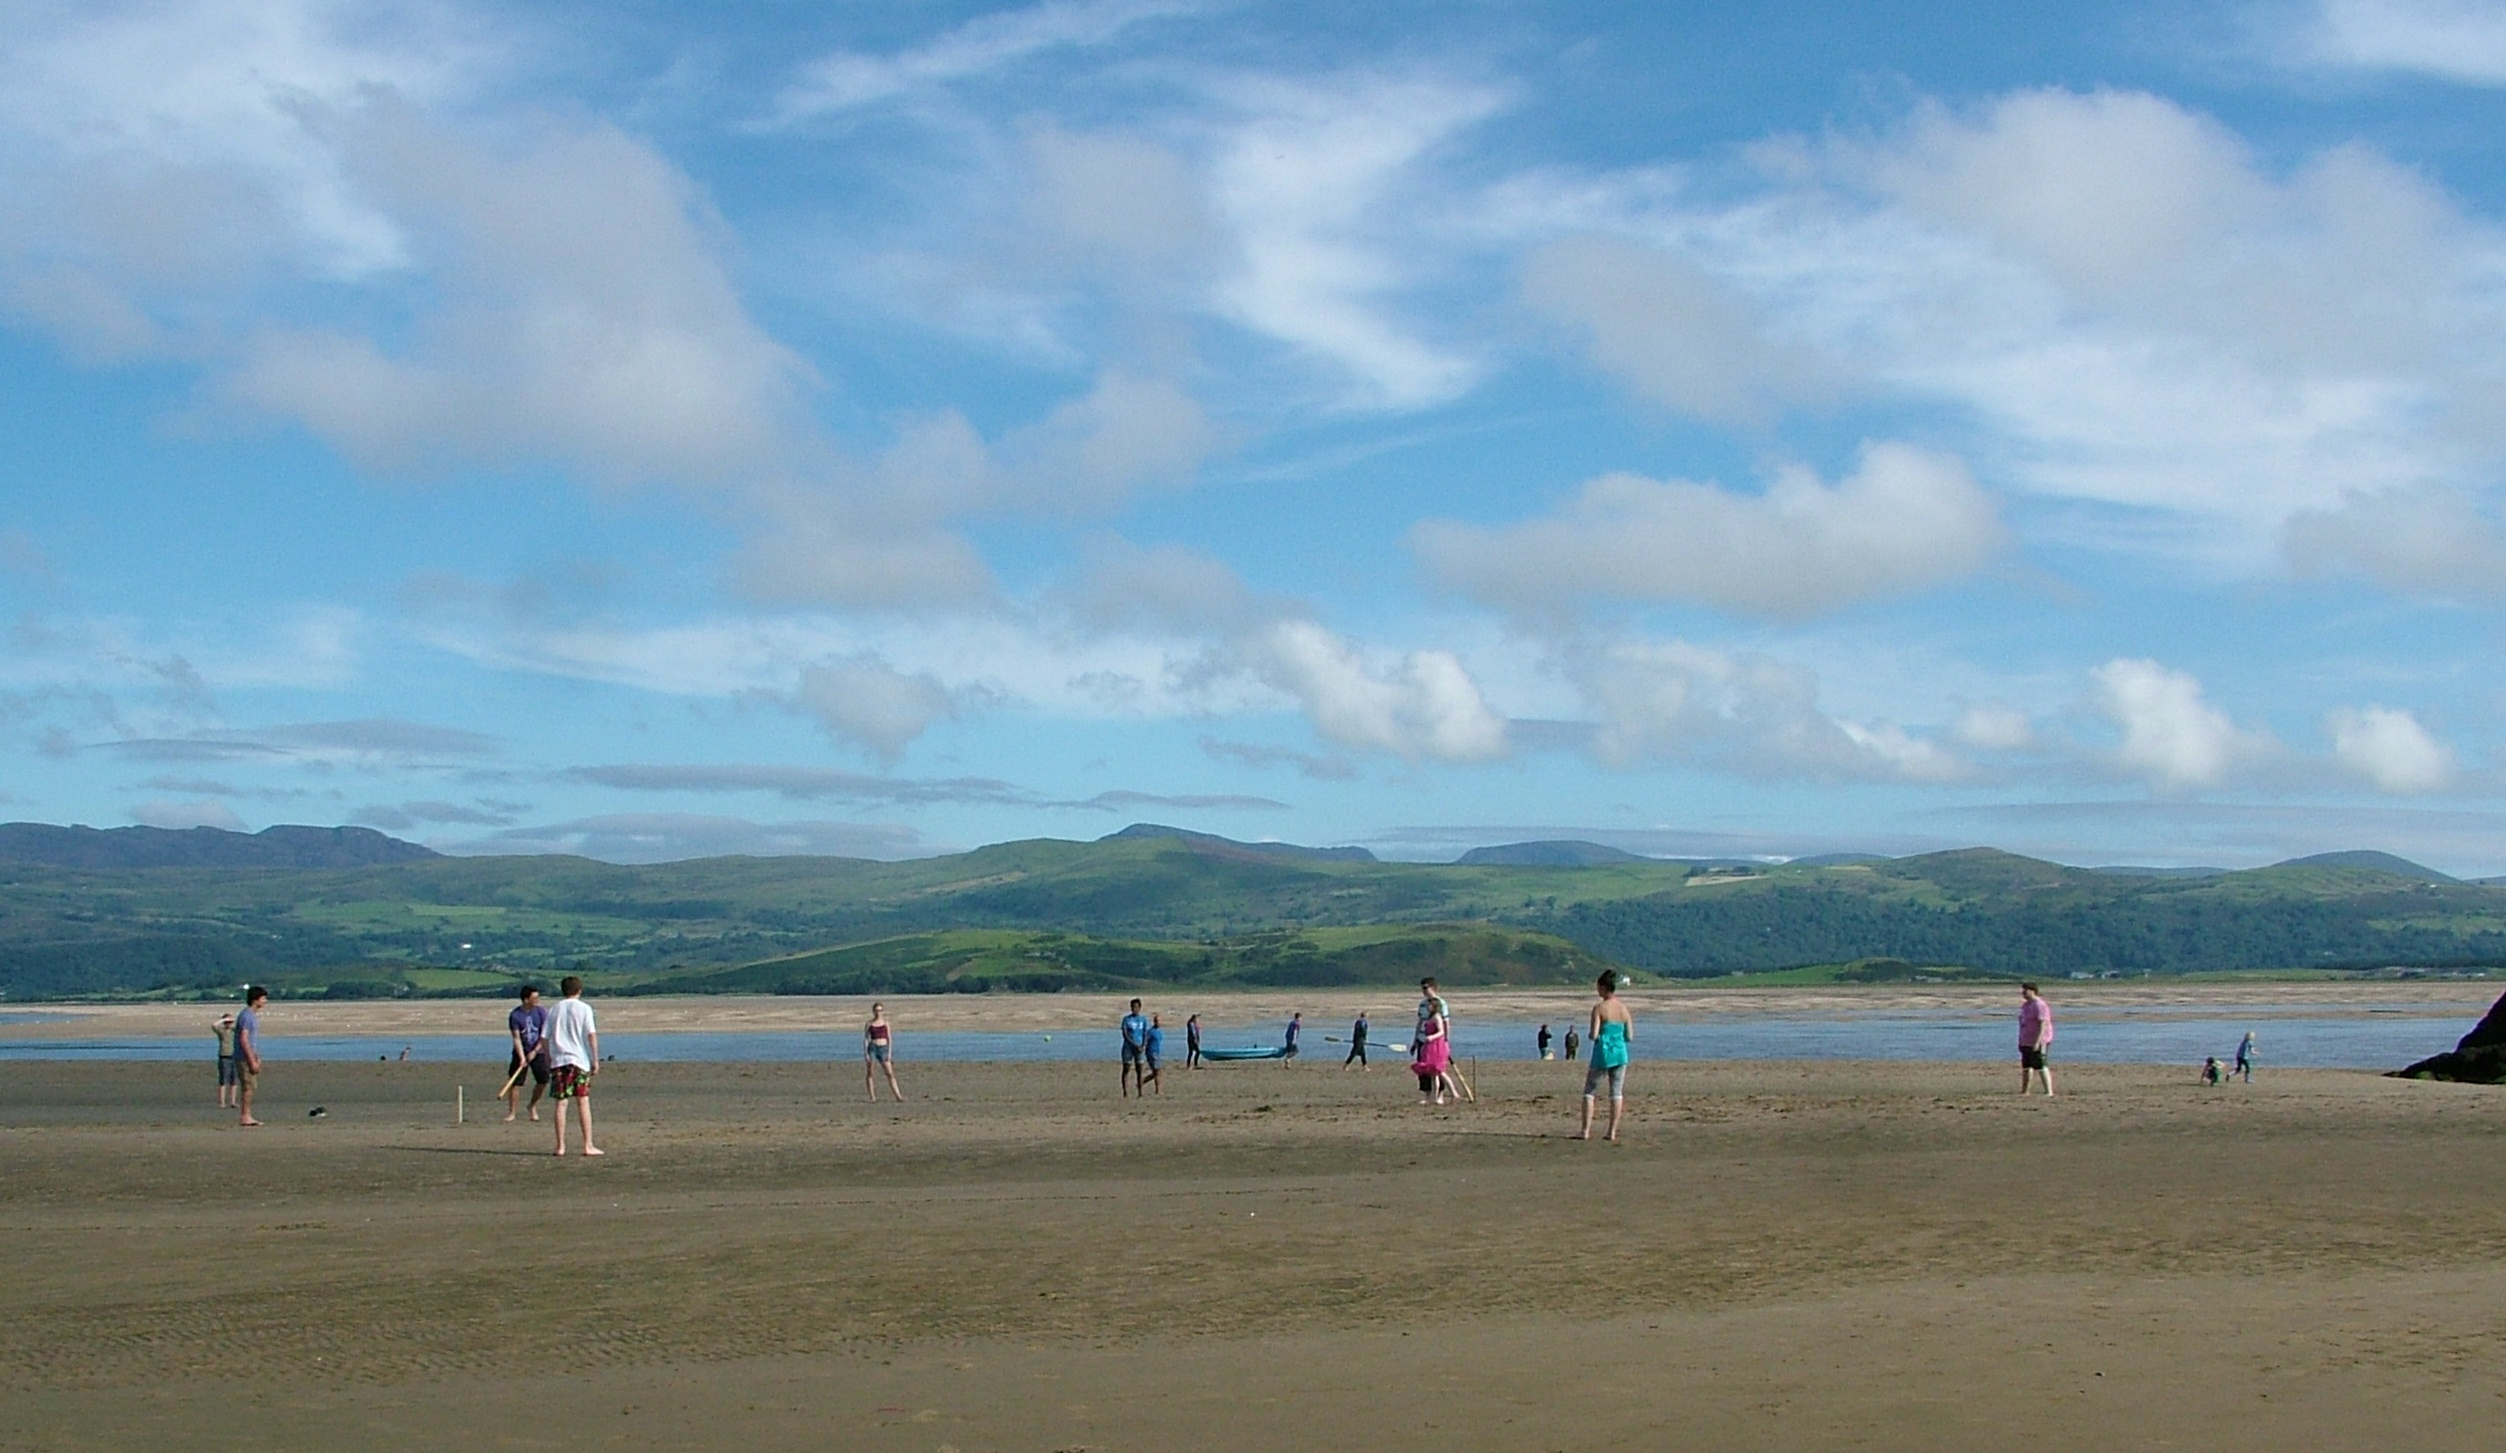 Beach cricket at Borth-y-Gest